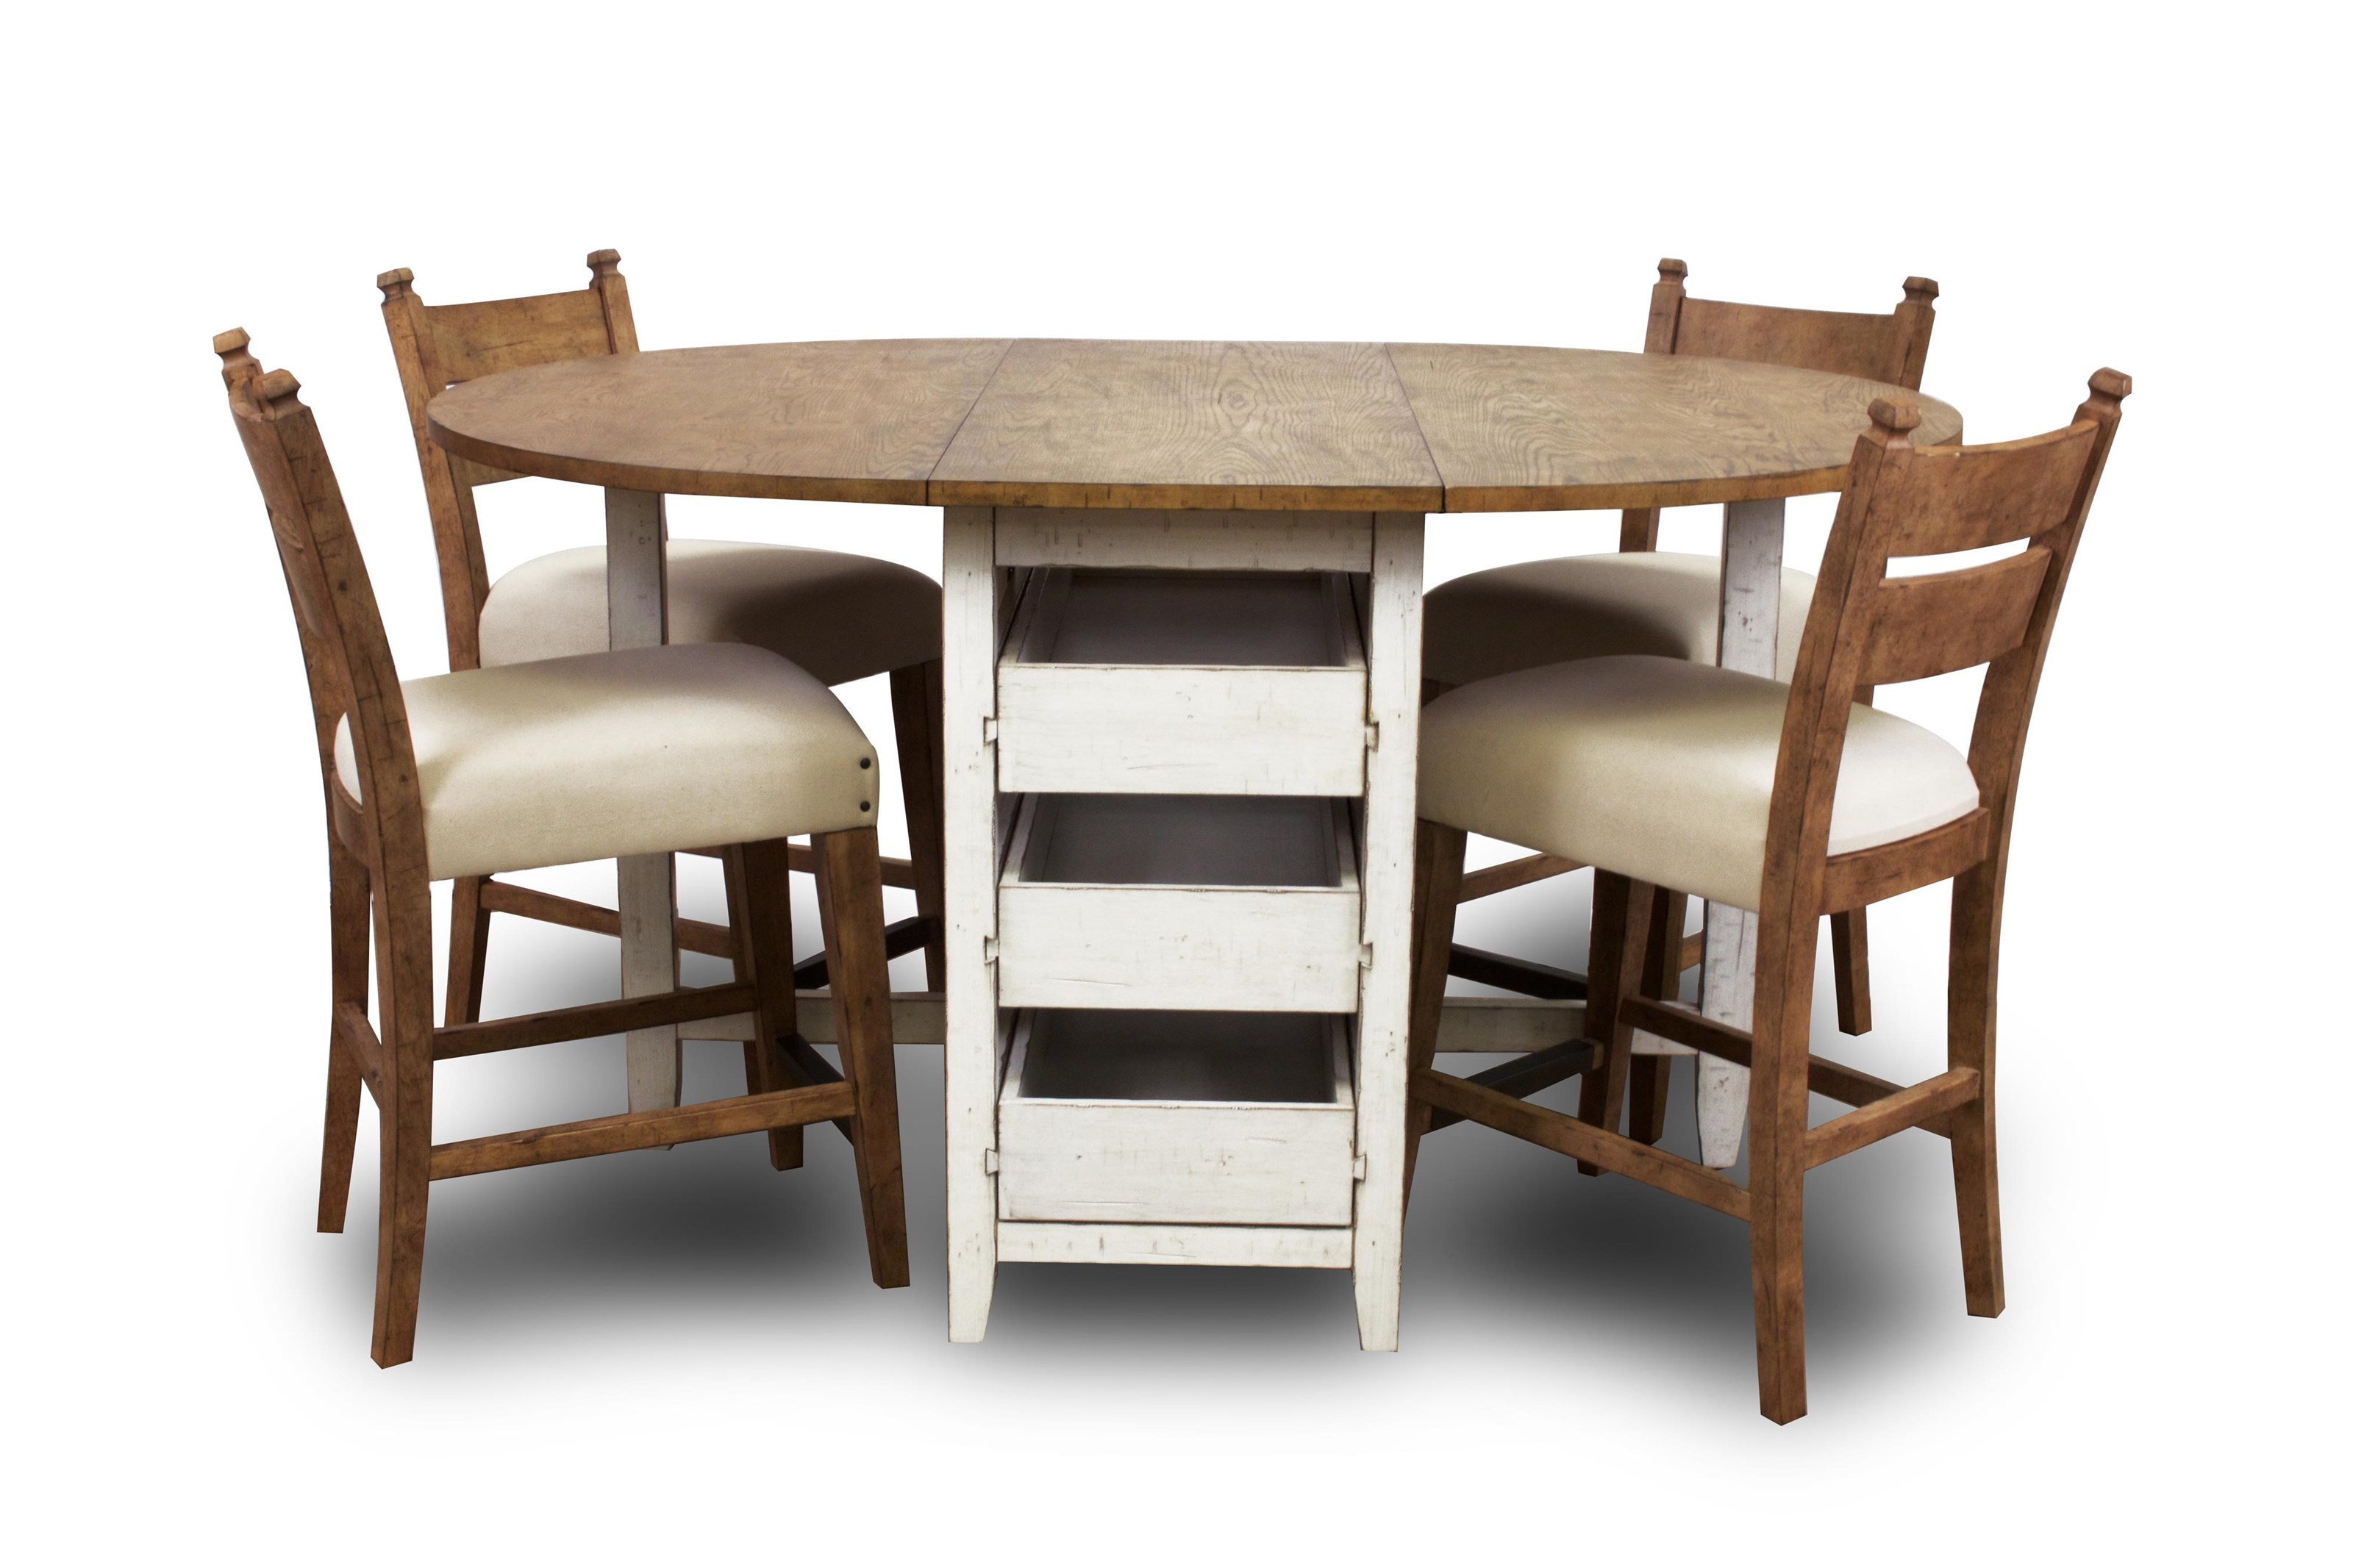 Trisha Yearwood Home Collection by Klaussner Coming Home Dining Table & 4 Pub Height Chairs - Item Number: D17926-P5PC